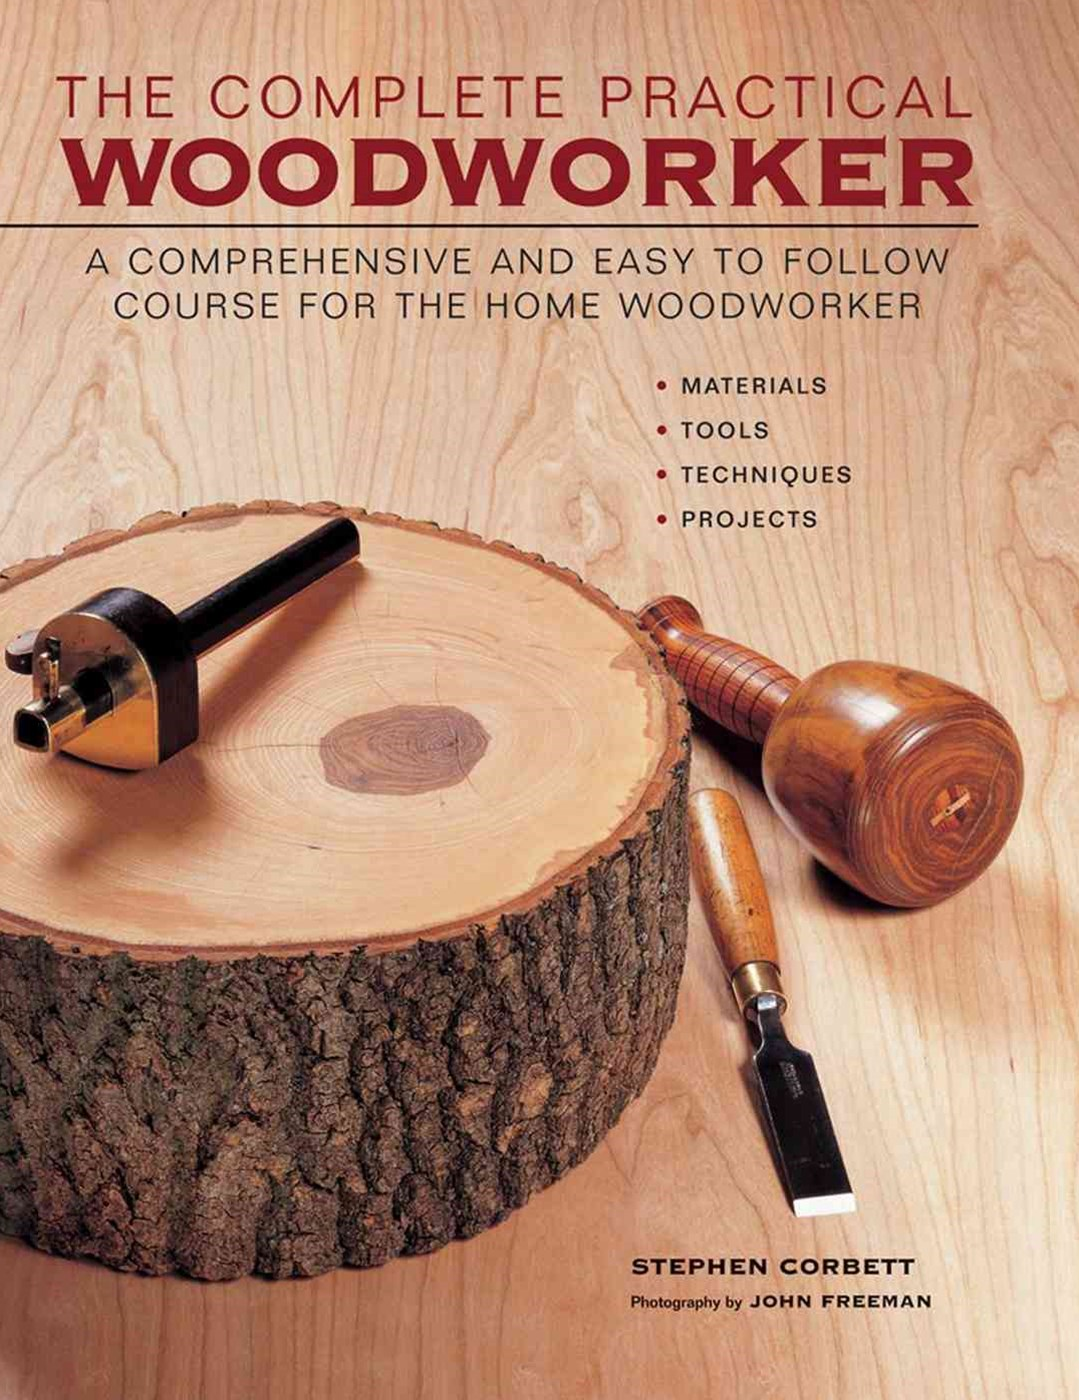 Complete Practical Woodworker